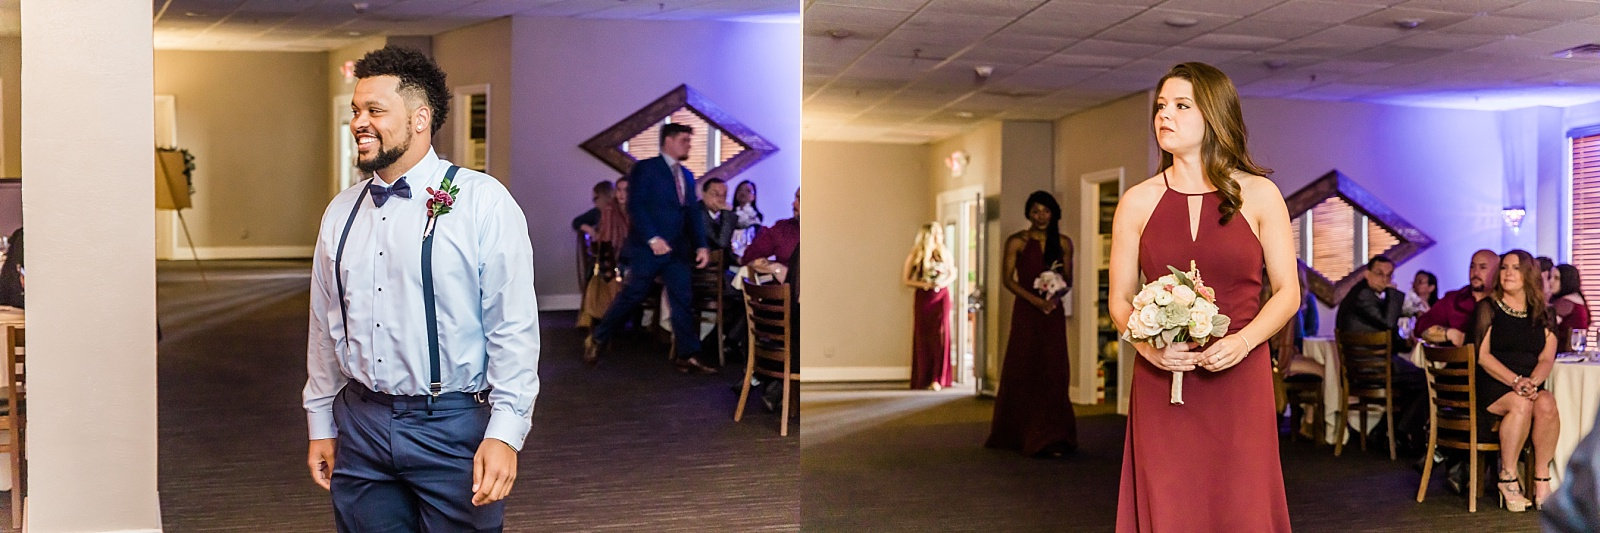 south bend wedding photographer the woodward room_0033.jpg